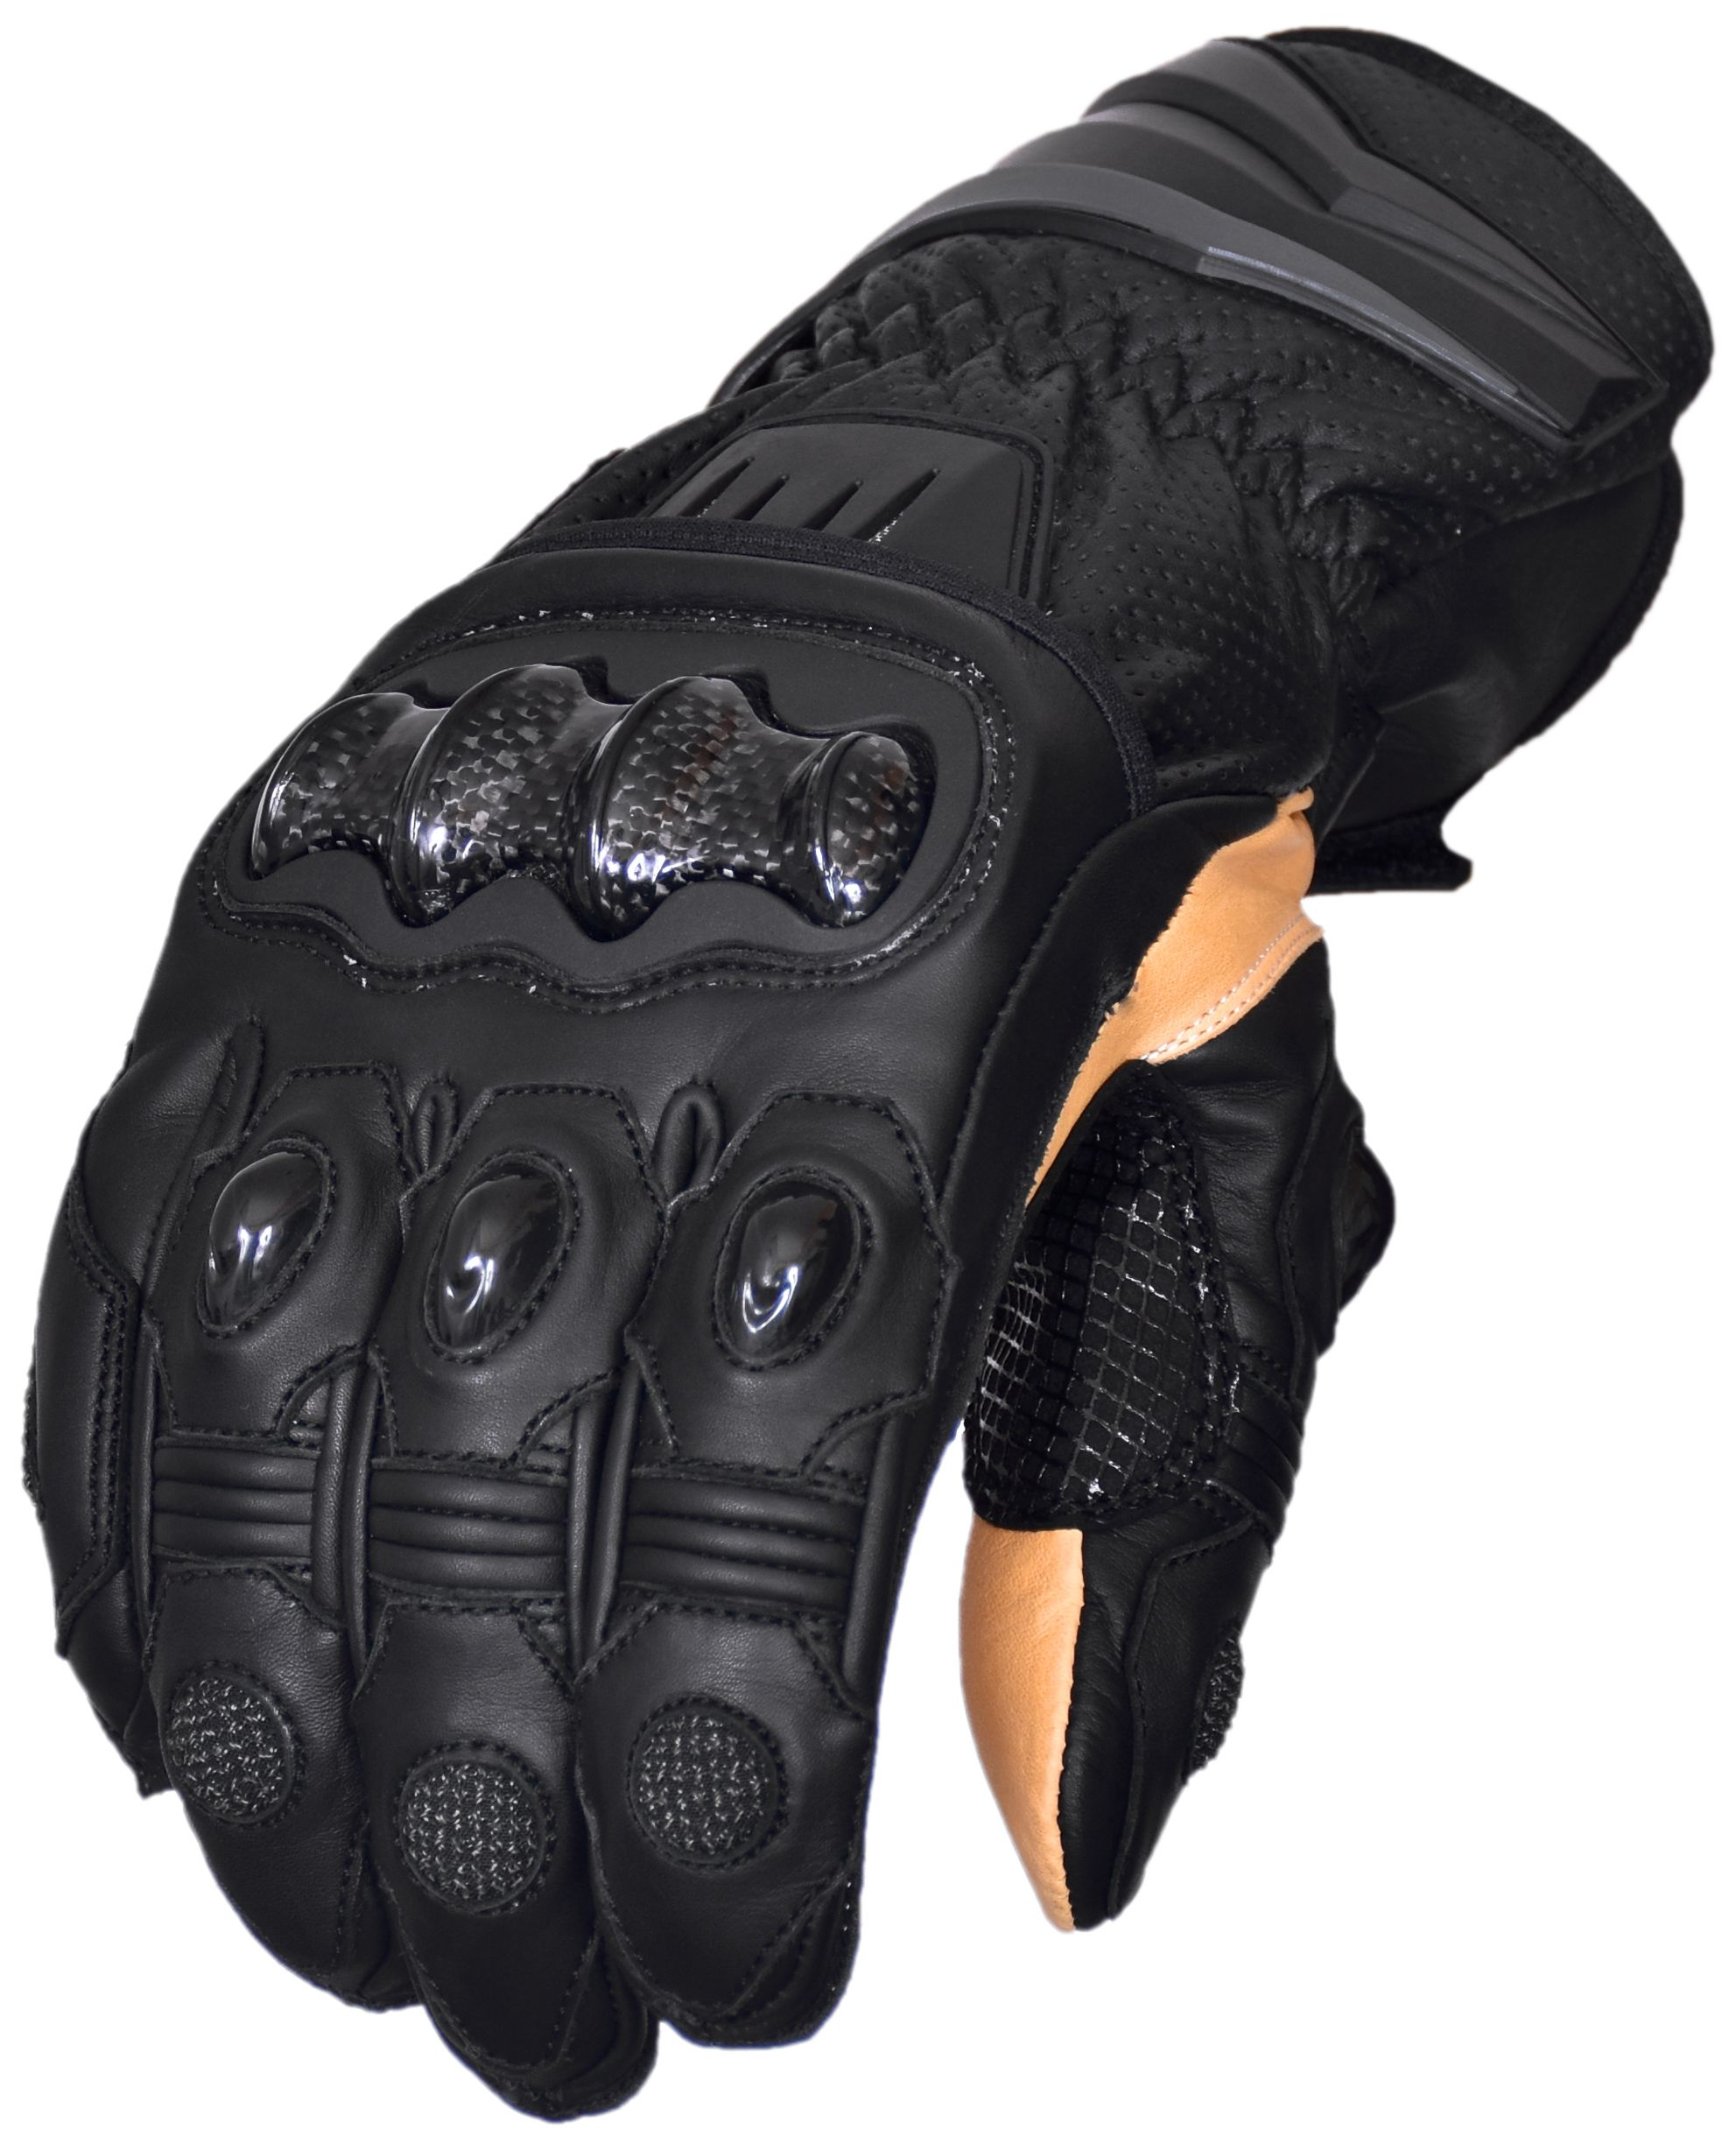 Kangroo leather glovesmy leather leather gloves gloves